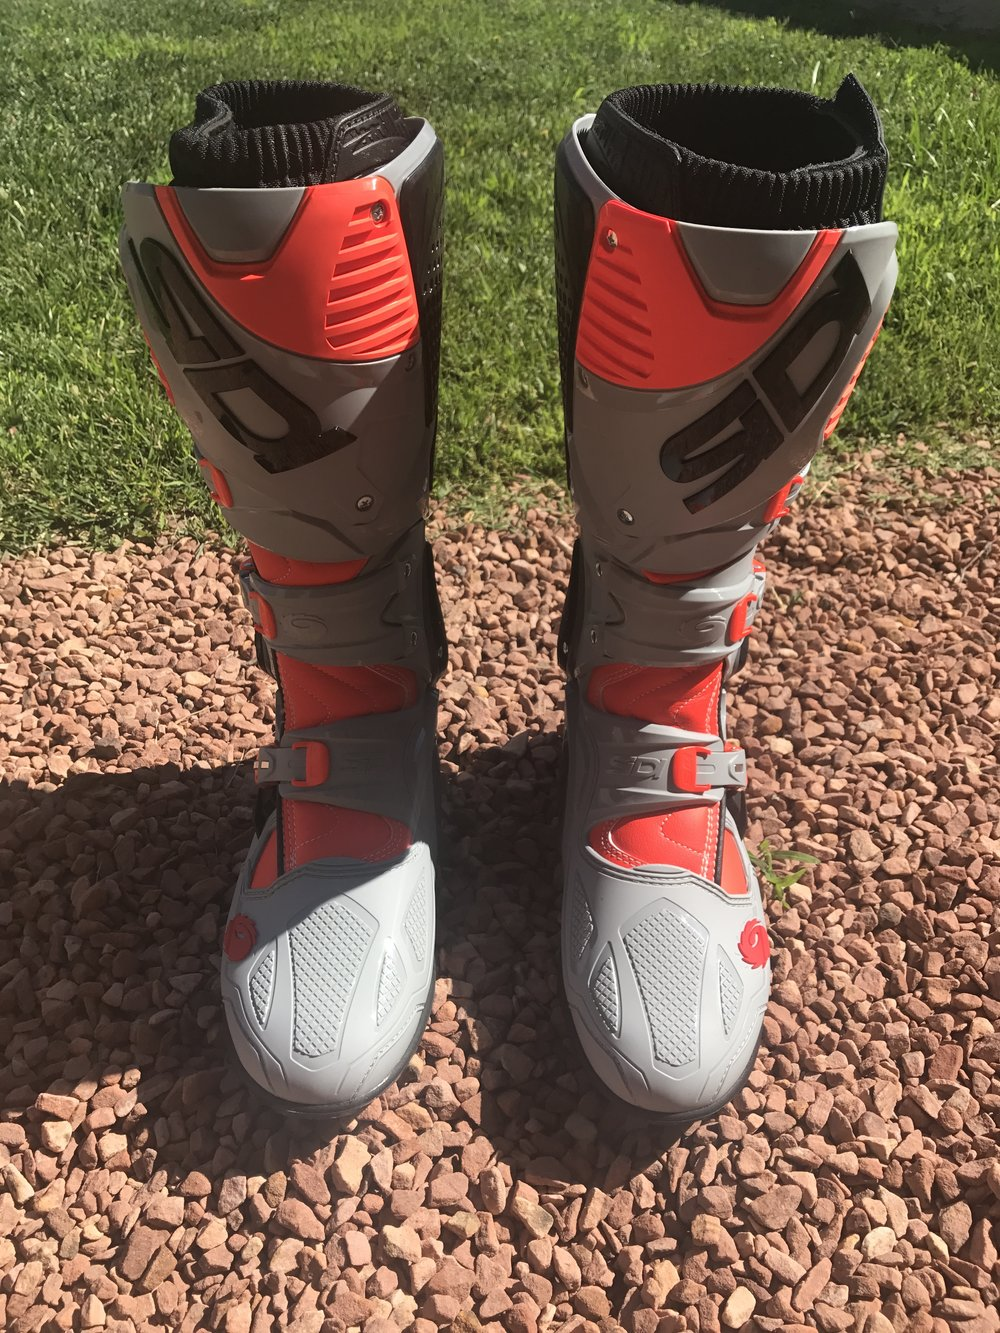 The Sidi Crossfire 3 SRS boots come in six different colorways.